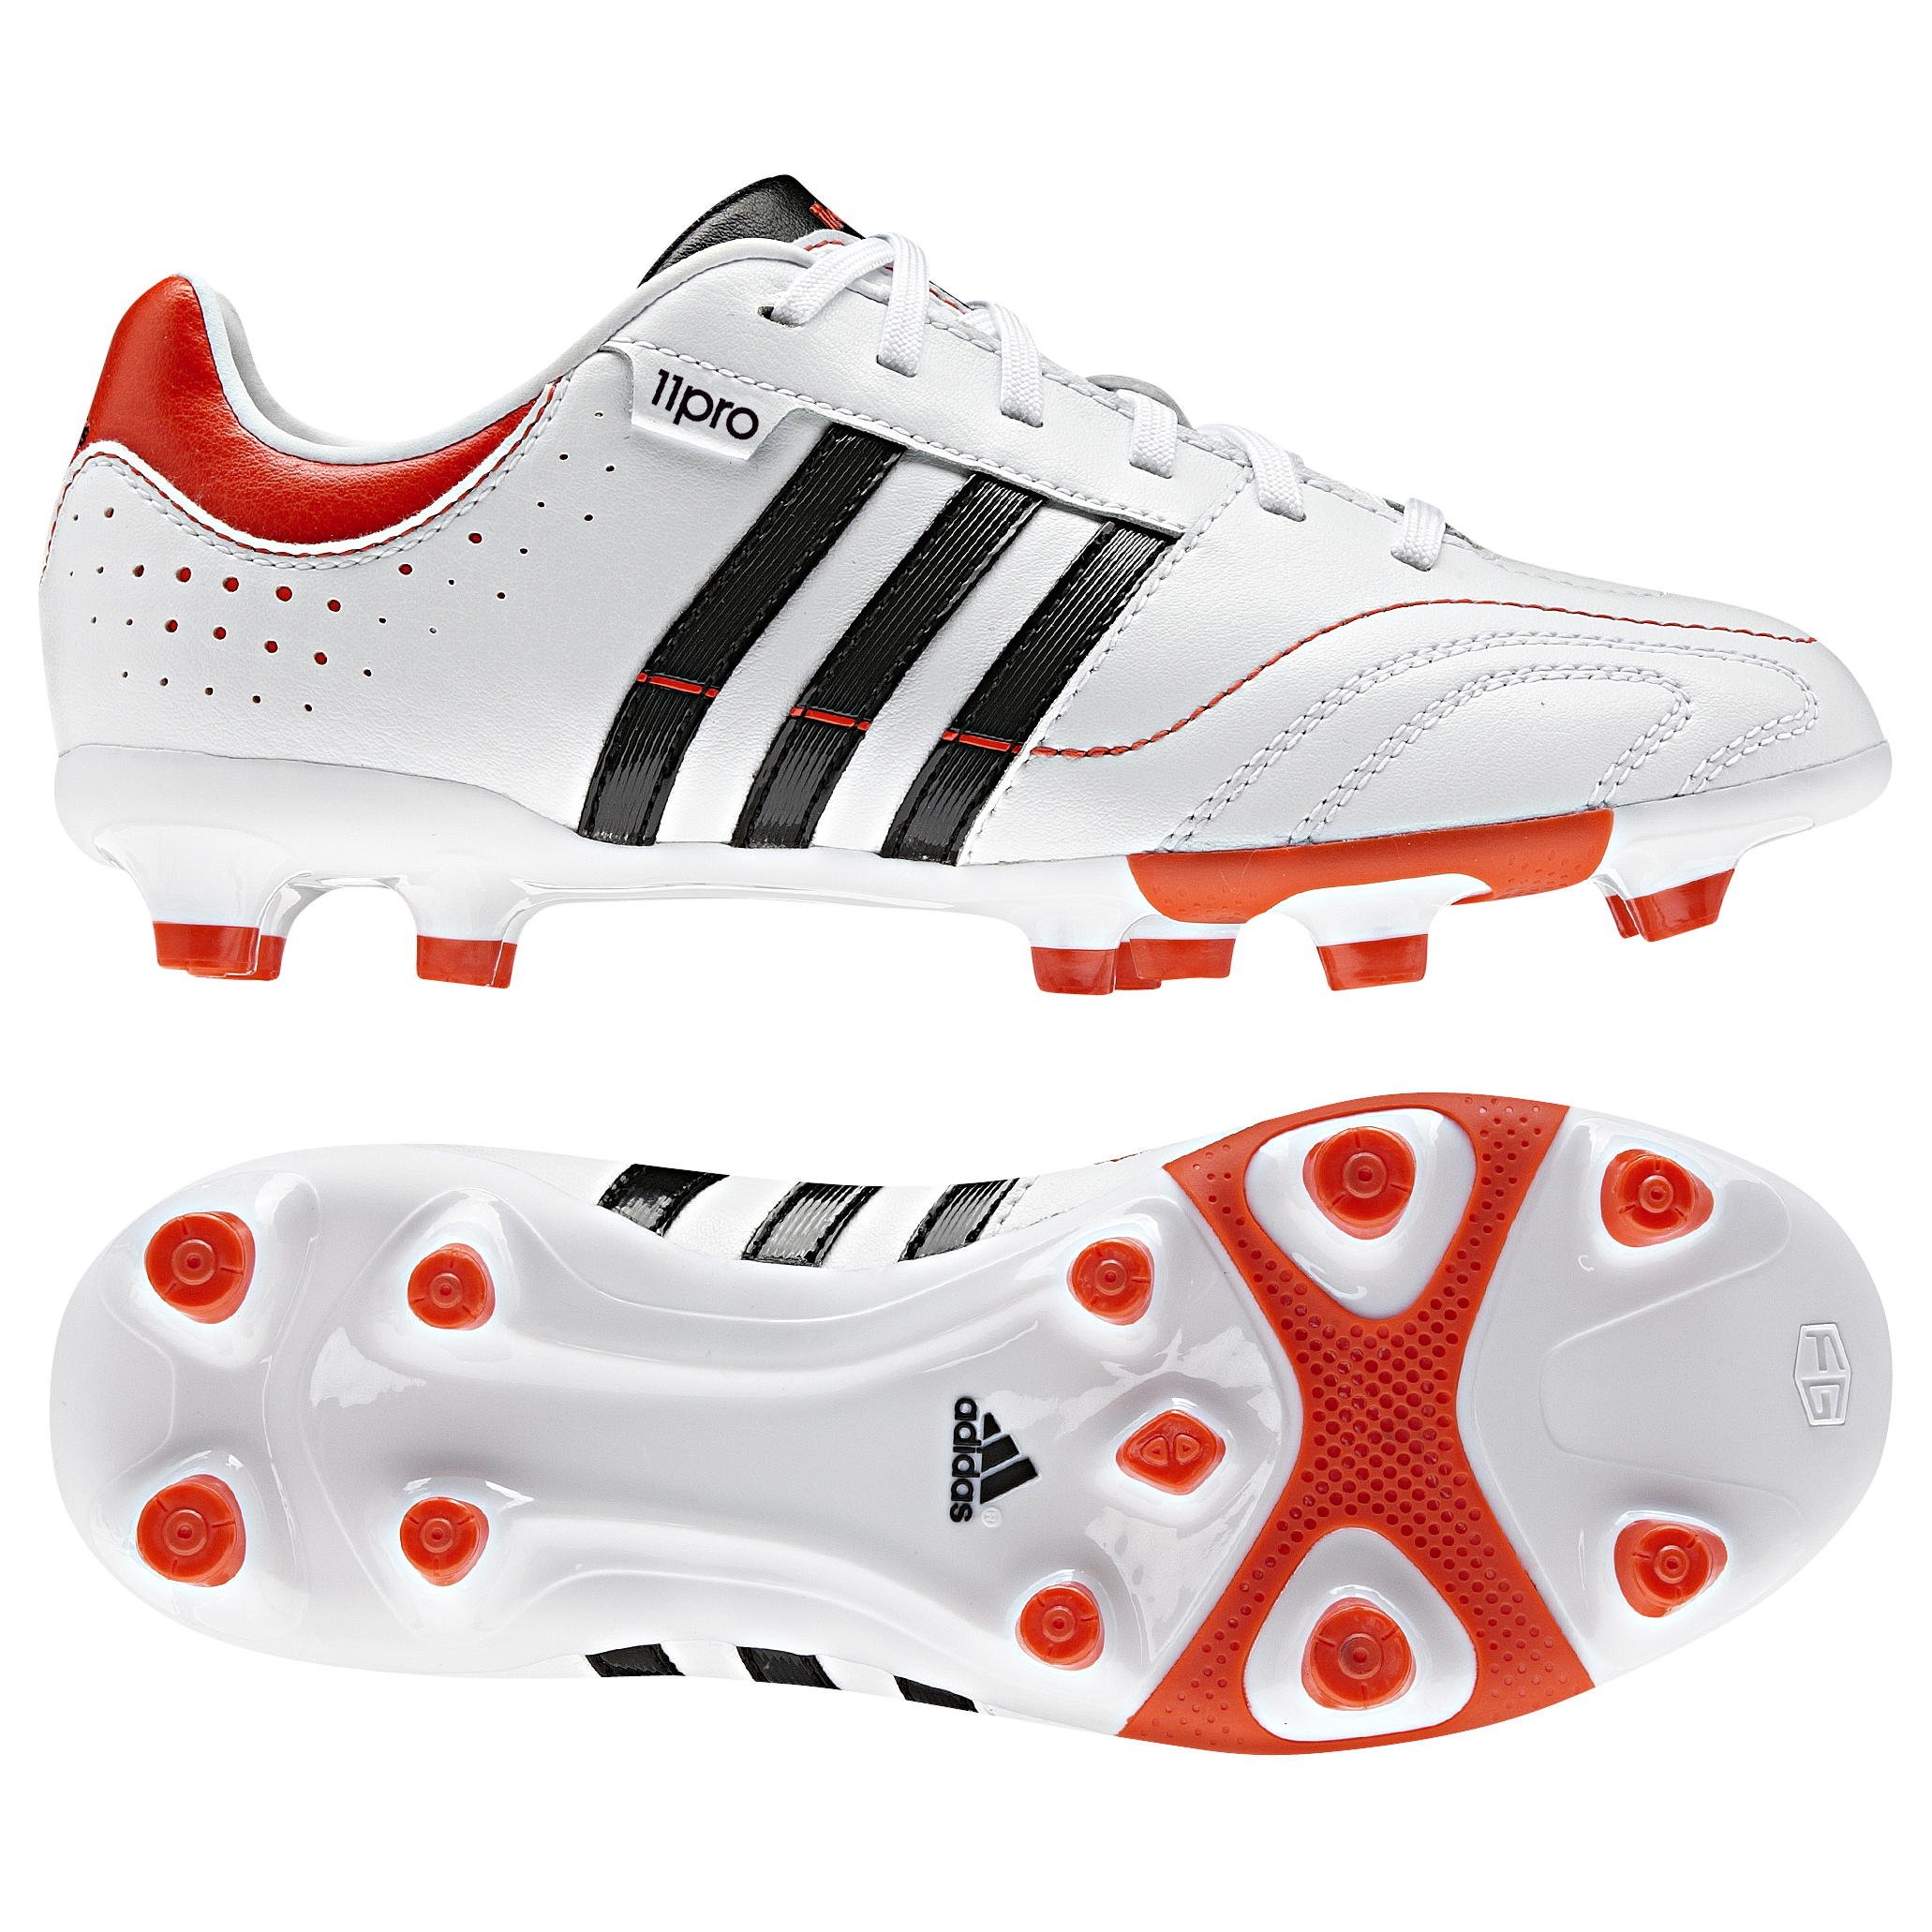 adidas 11Nova TRX Firm Ground Football Boots - Running White/Black/High Energy S12 - Kids